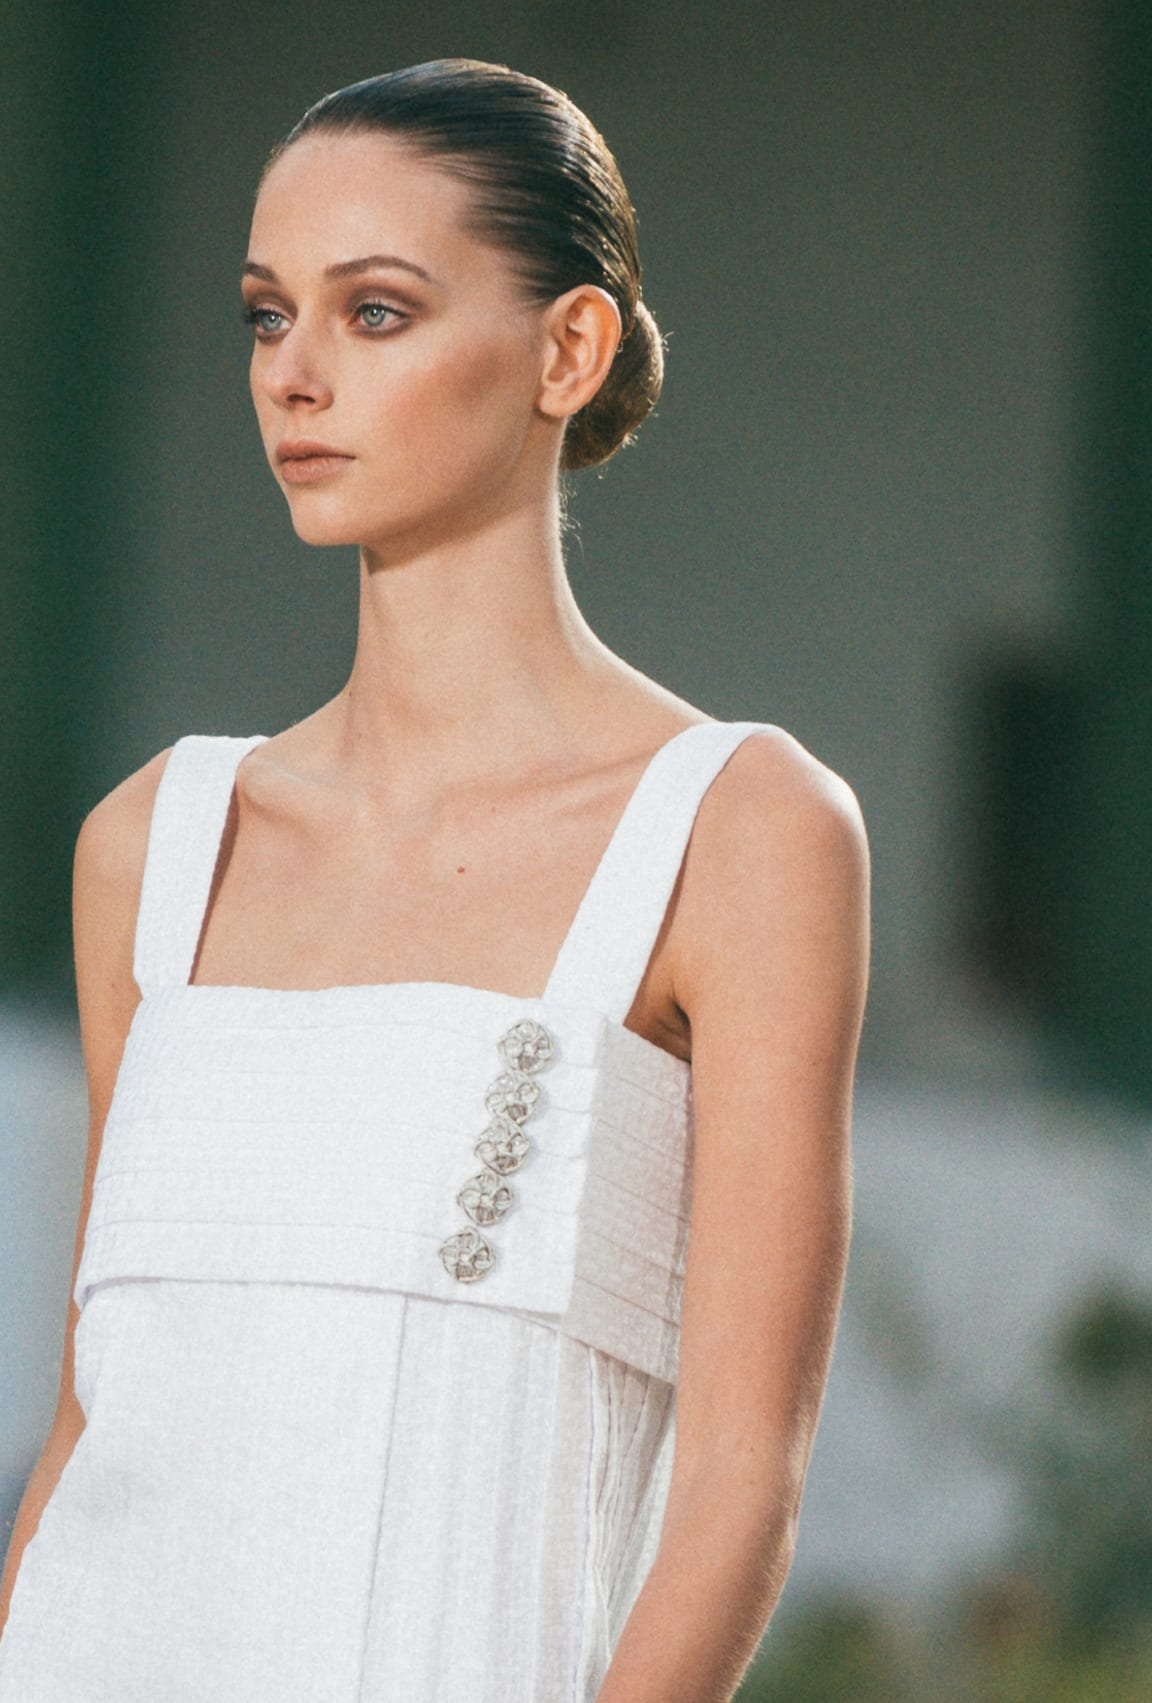 View 6 - Look 26 - Spring-Summer 2020 Haute Couture - see full sized version